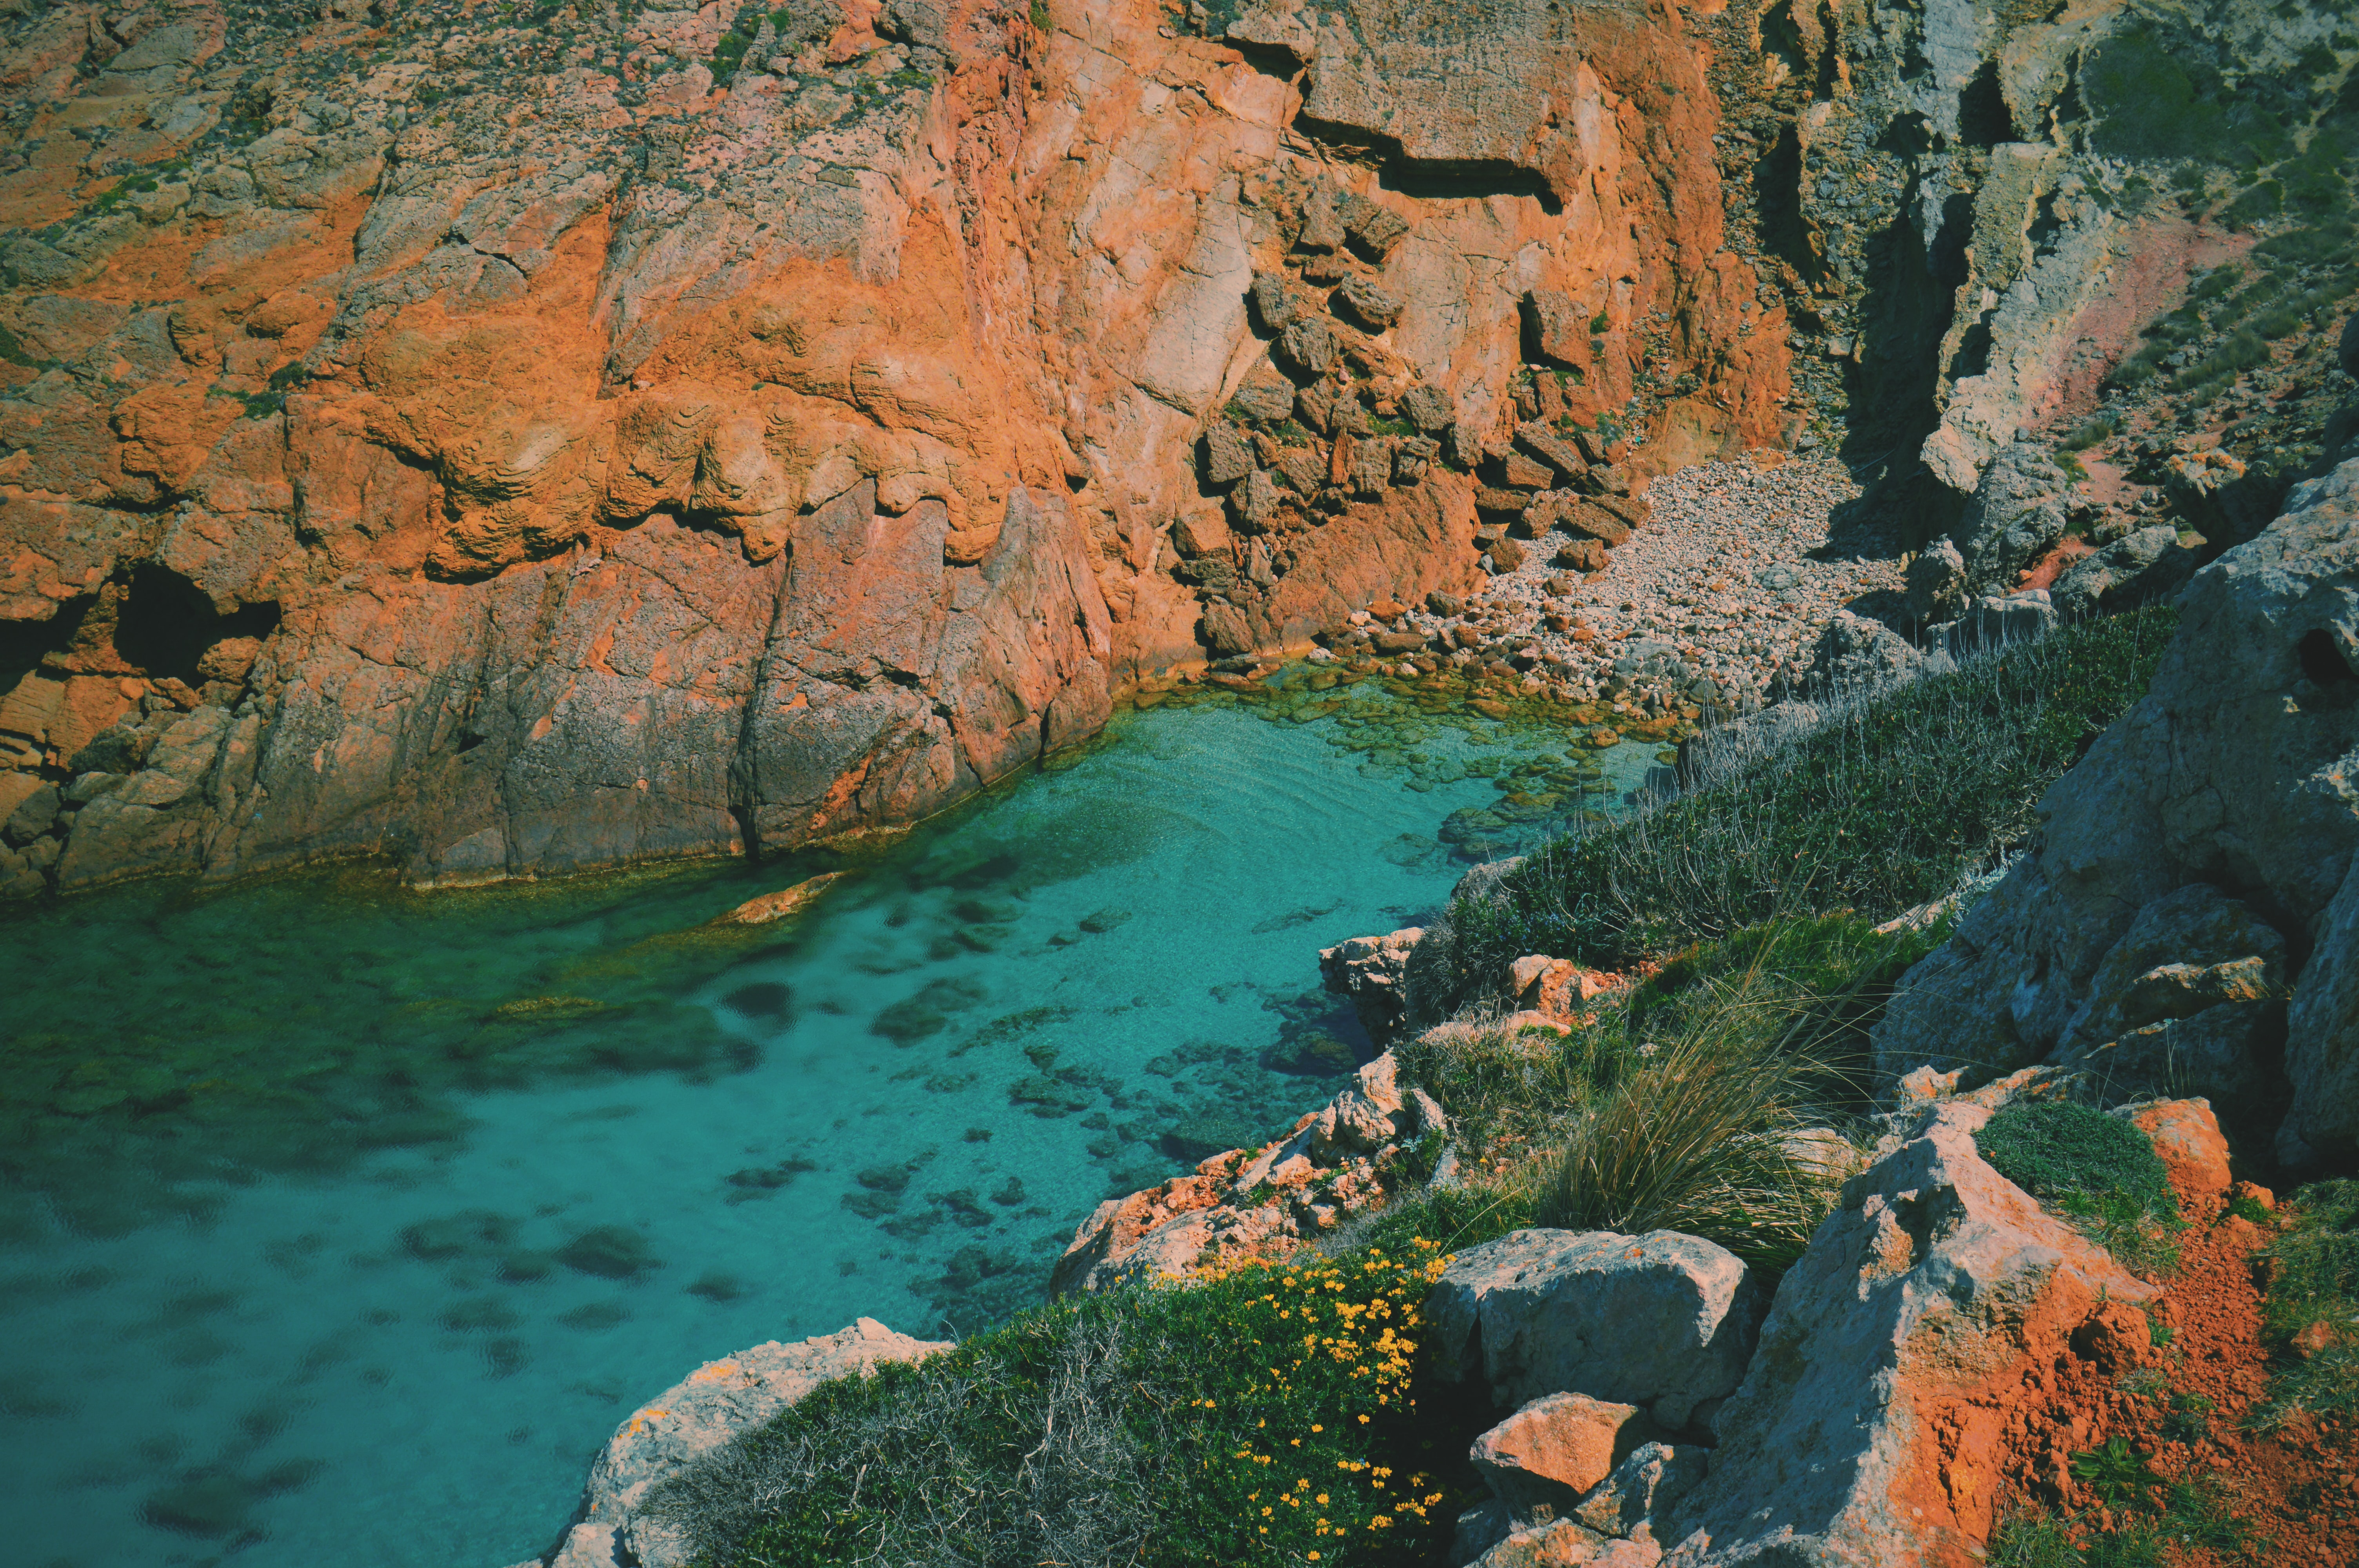 Source of a clear blue river surrounded by red rocky cliffs in Arenal d'en Castell